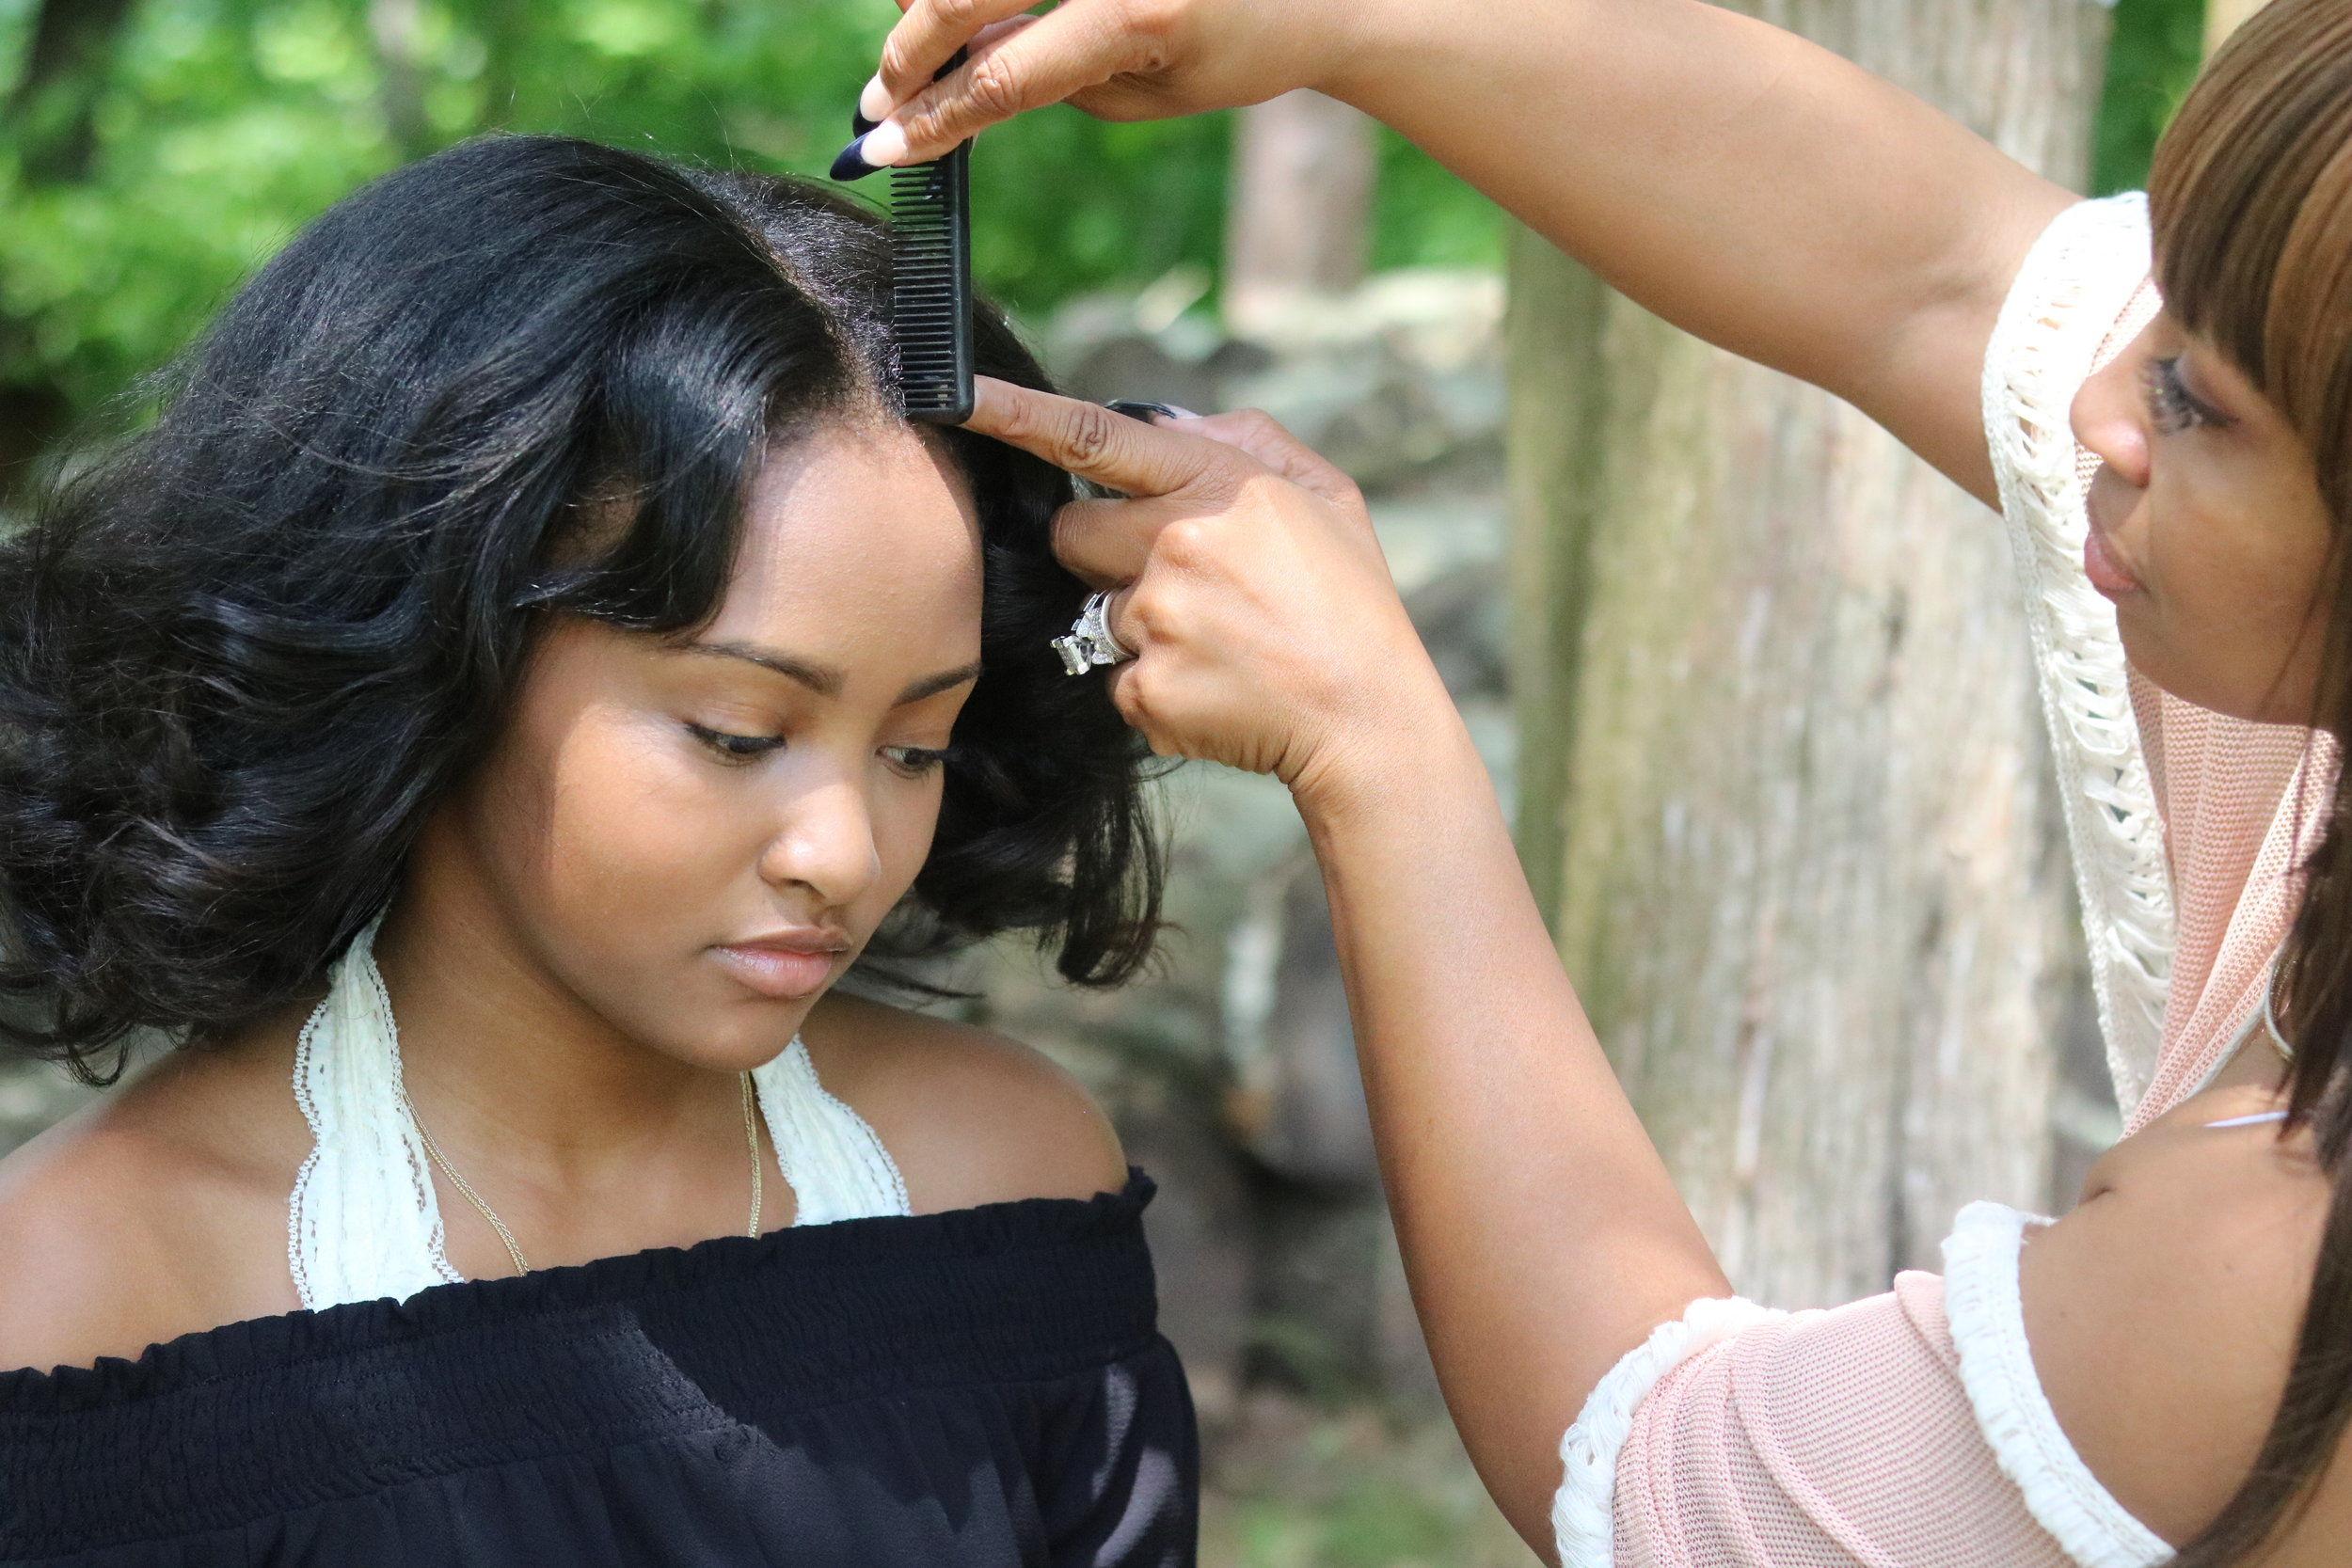 Theresa makes it a priority to teach her clients & her daughter healthy hair practices